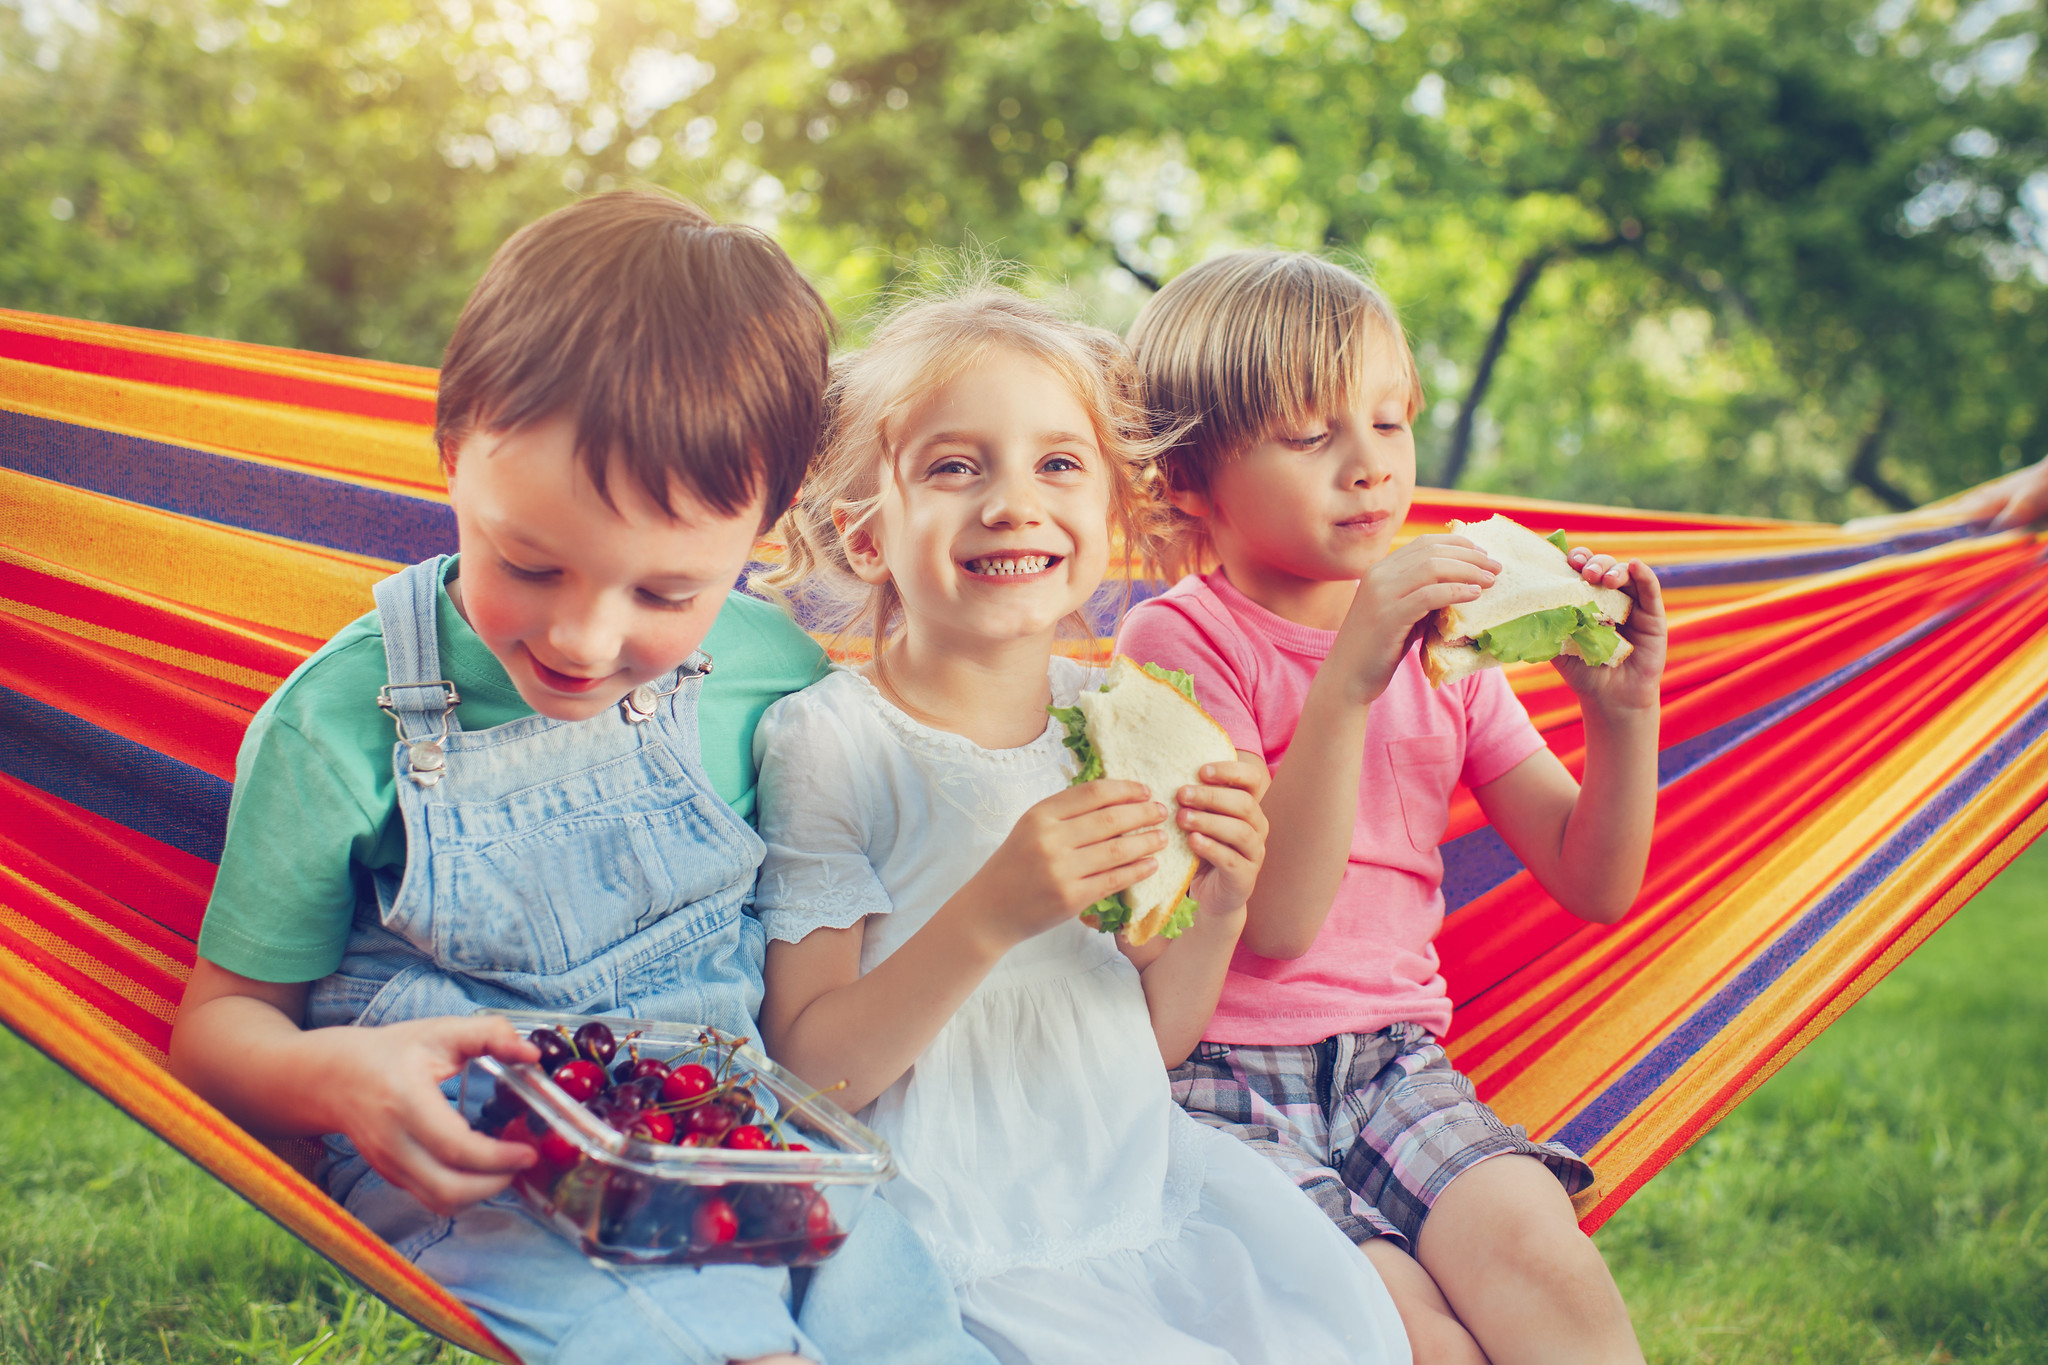 3 children eating sandwiches on a hammock